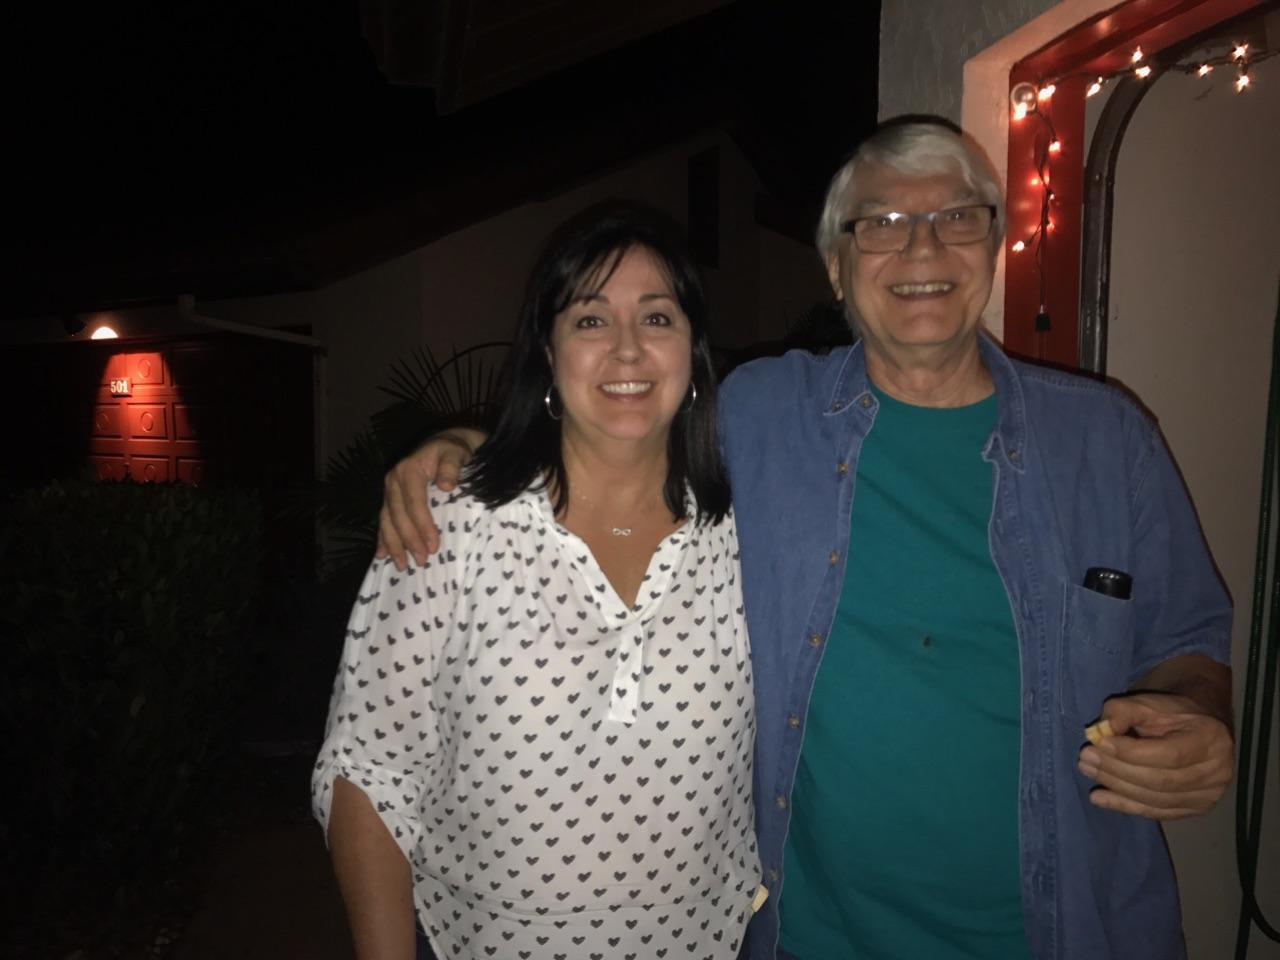 Don was an understated, handsome man with an easy smile.  He was soft spoken but quick witted.   I always enjoyed seeing him at the Waterwood parties and he will be greatly missed.  RIP Don.